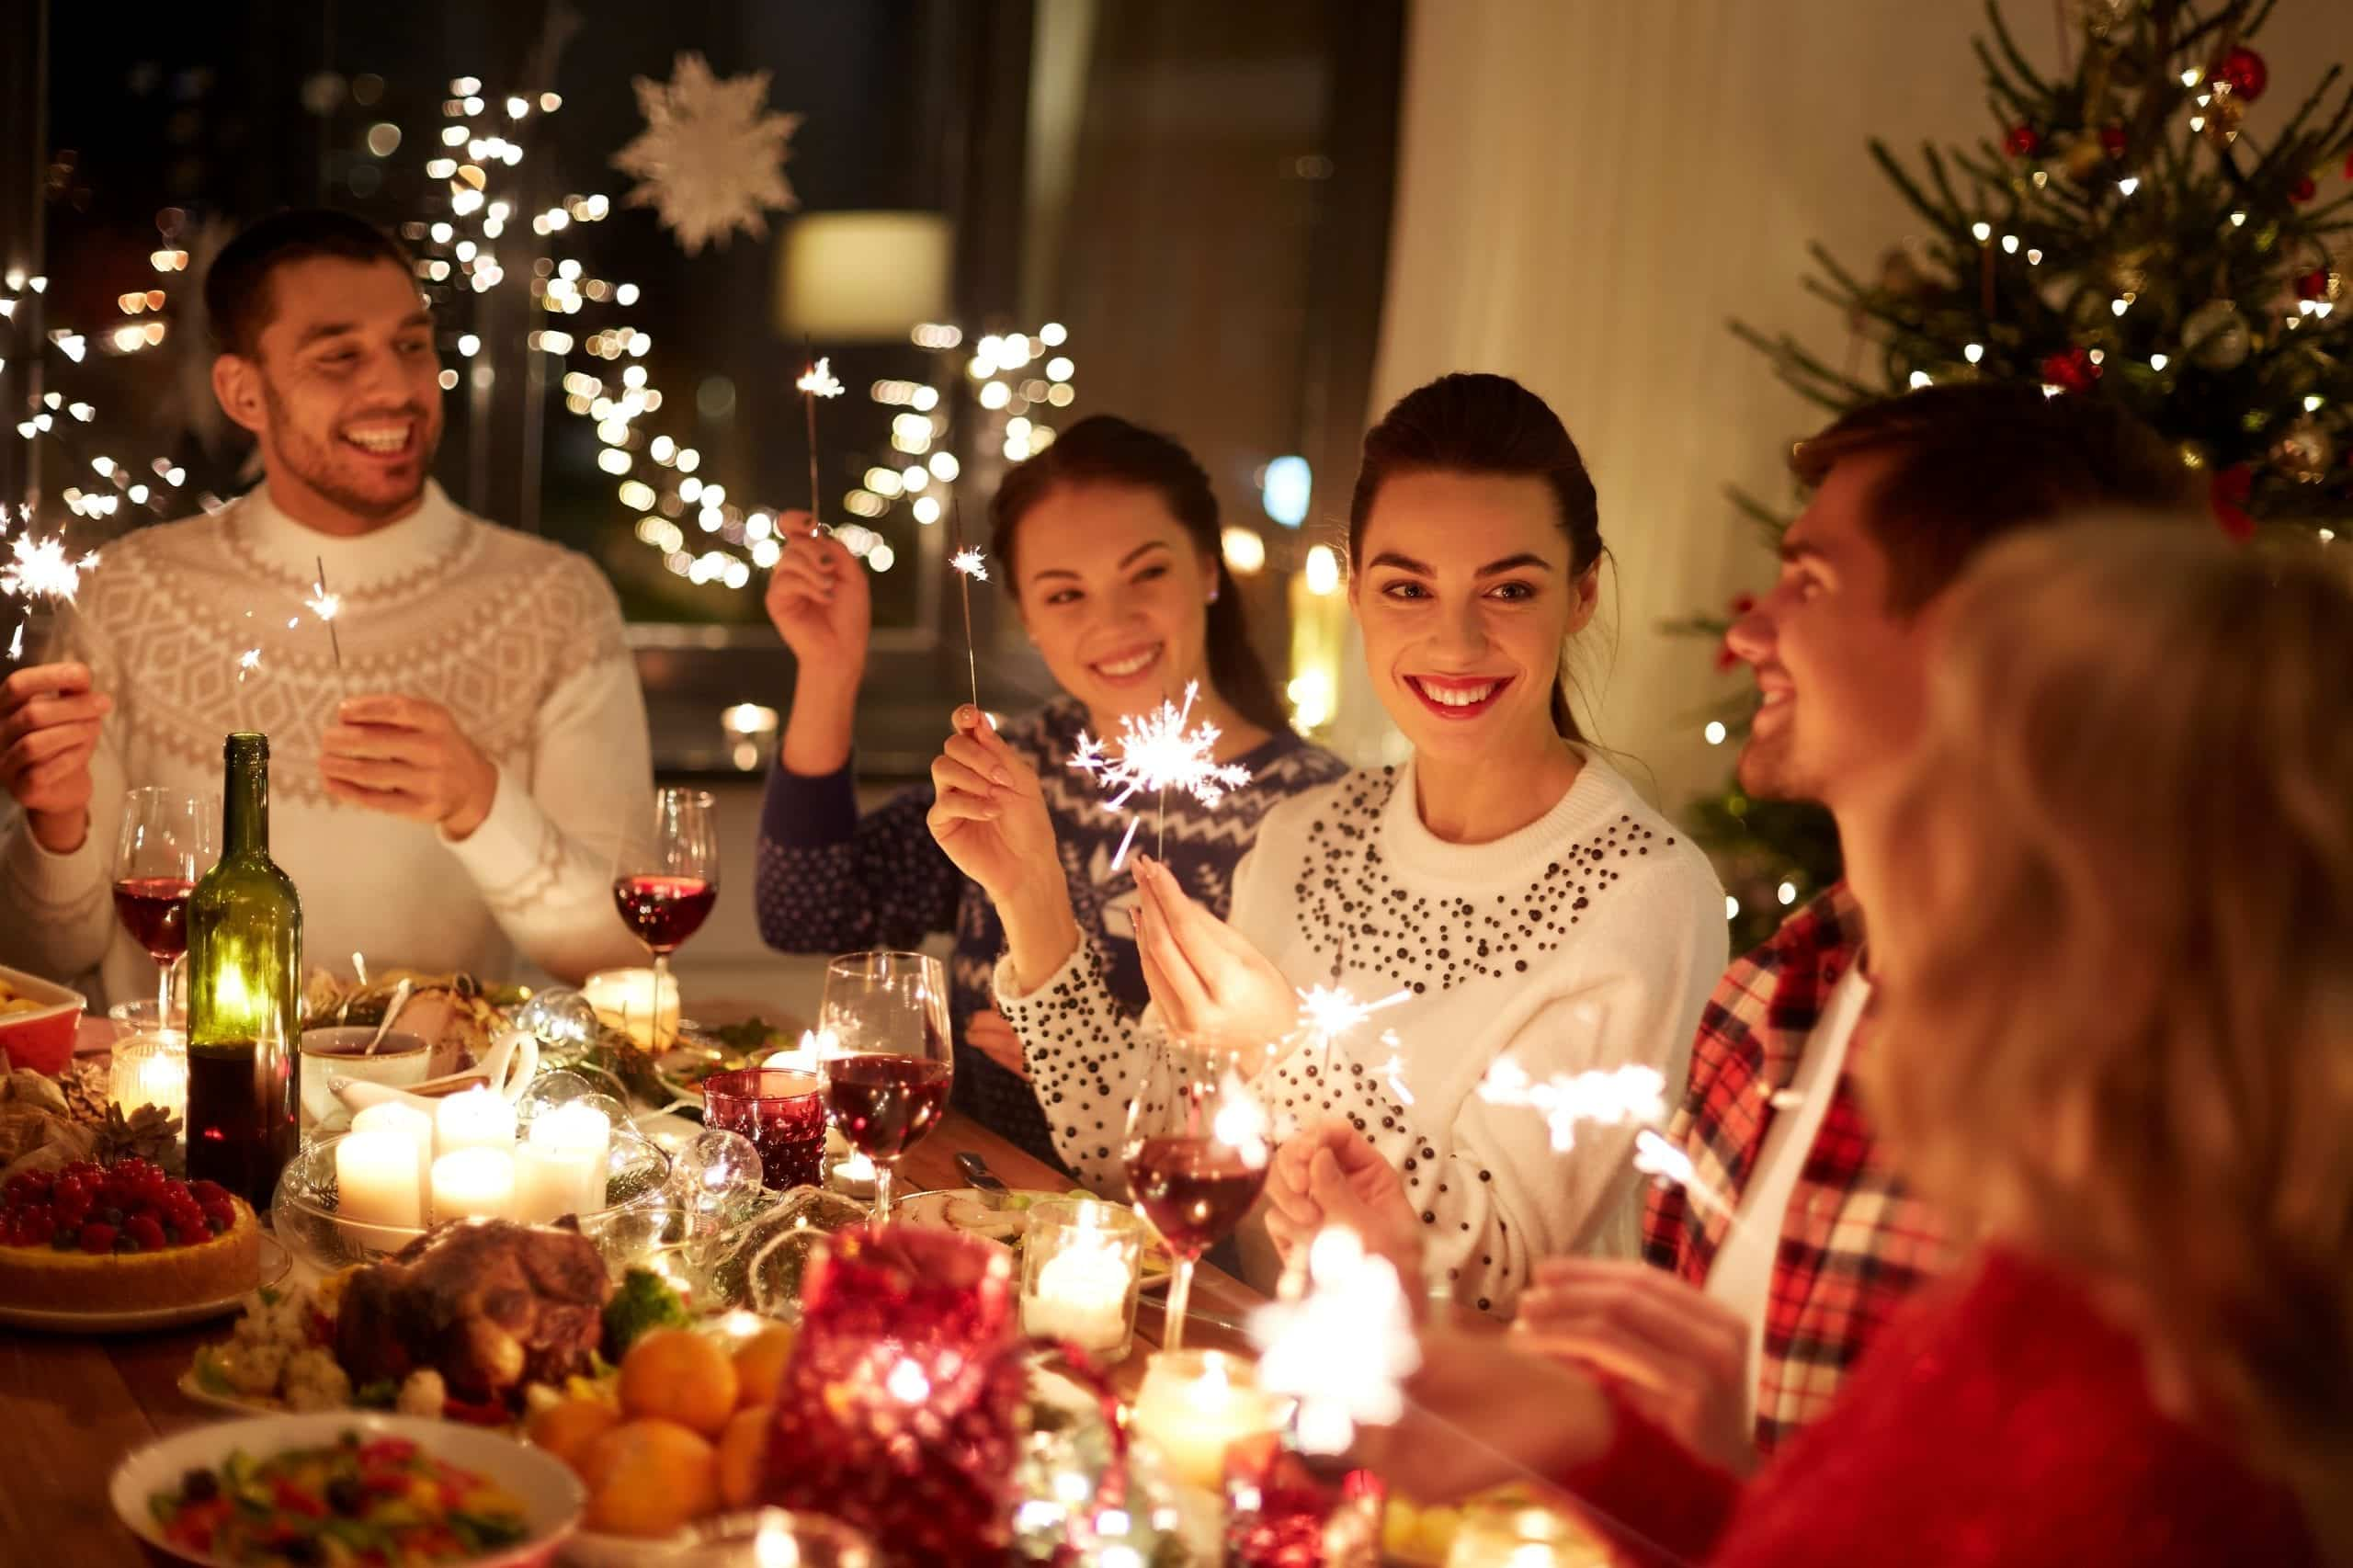 What Causes Holiday Stress?